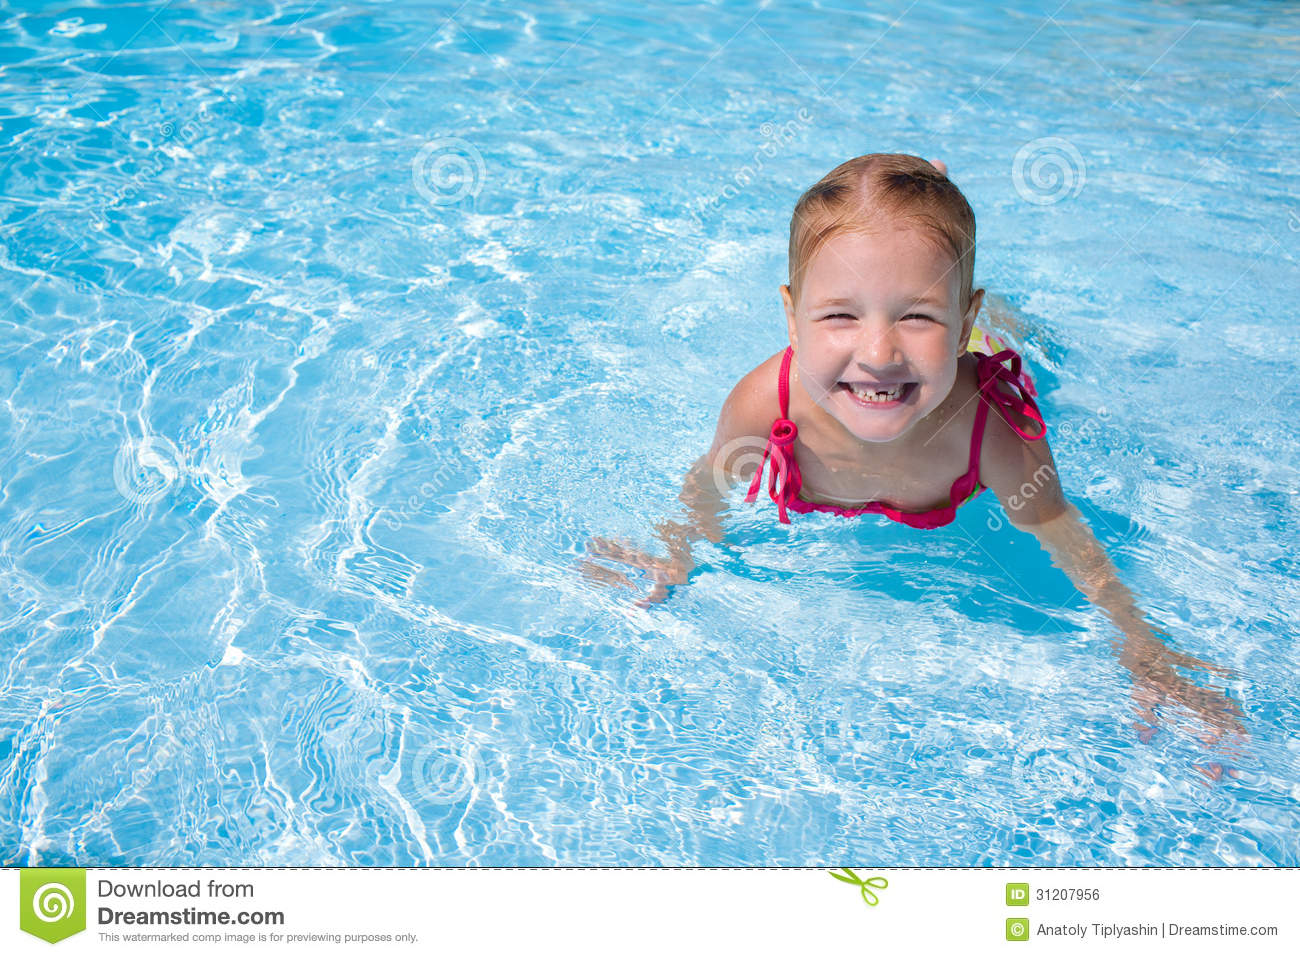 Girl child in water